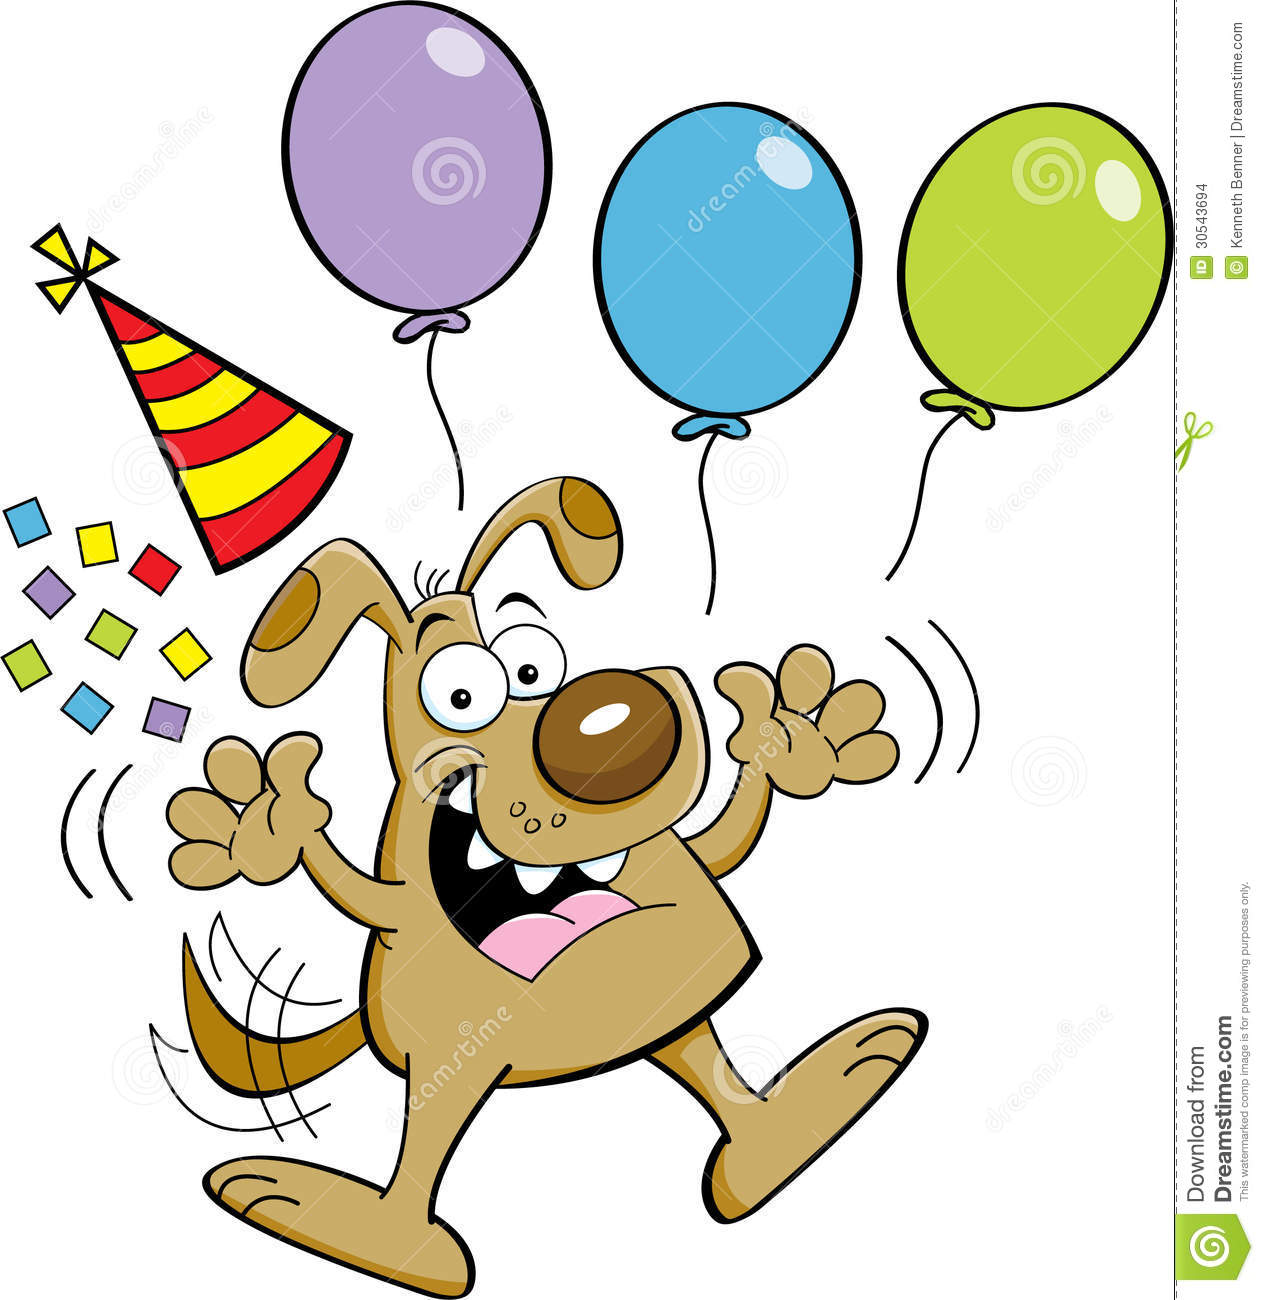 Cartoon illustration of a dog jumping with balloons and a party hat.